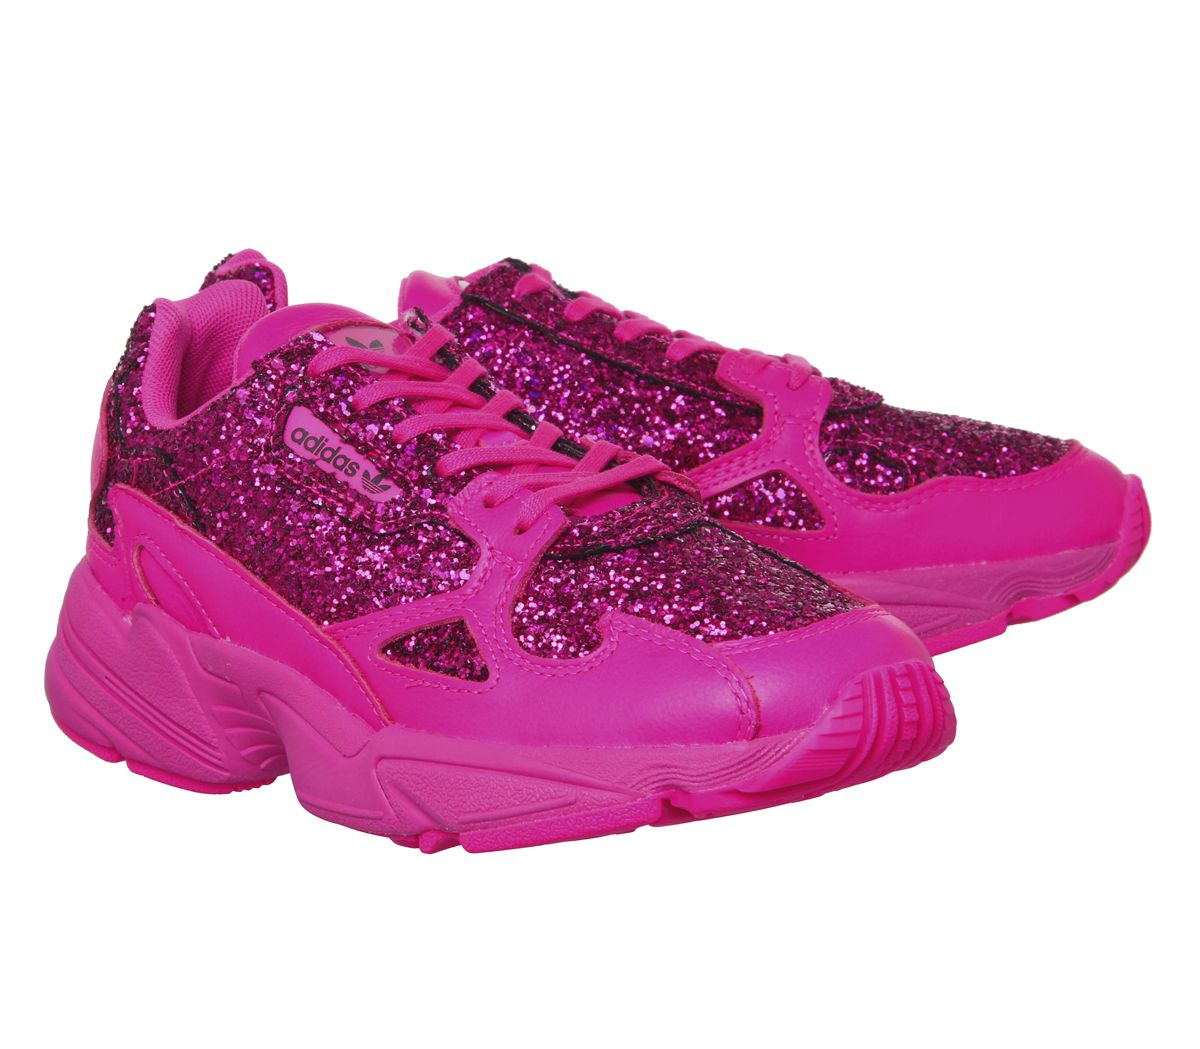 promo code 79389 2baa8 Sentinel Womens Adidas Falcon Trainers Shock Pink F Trainers Shoes